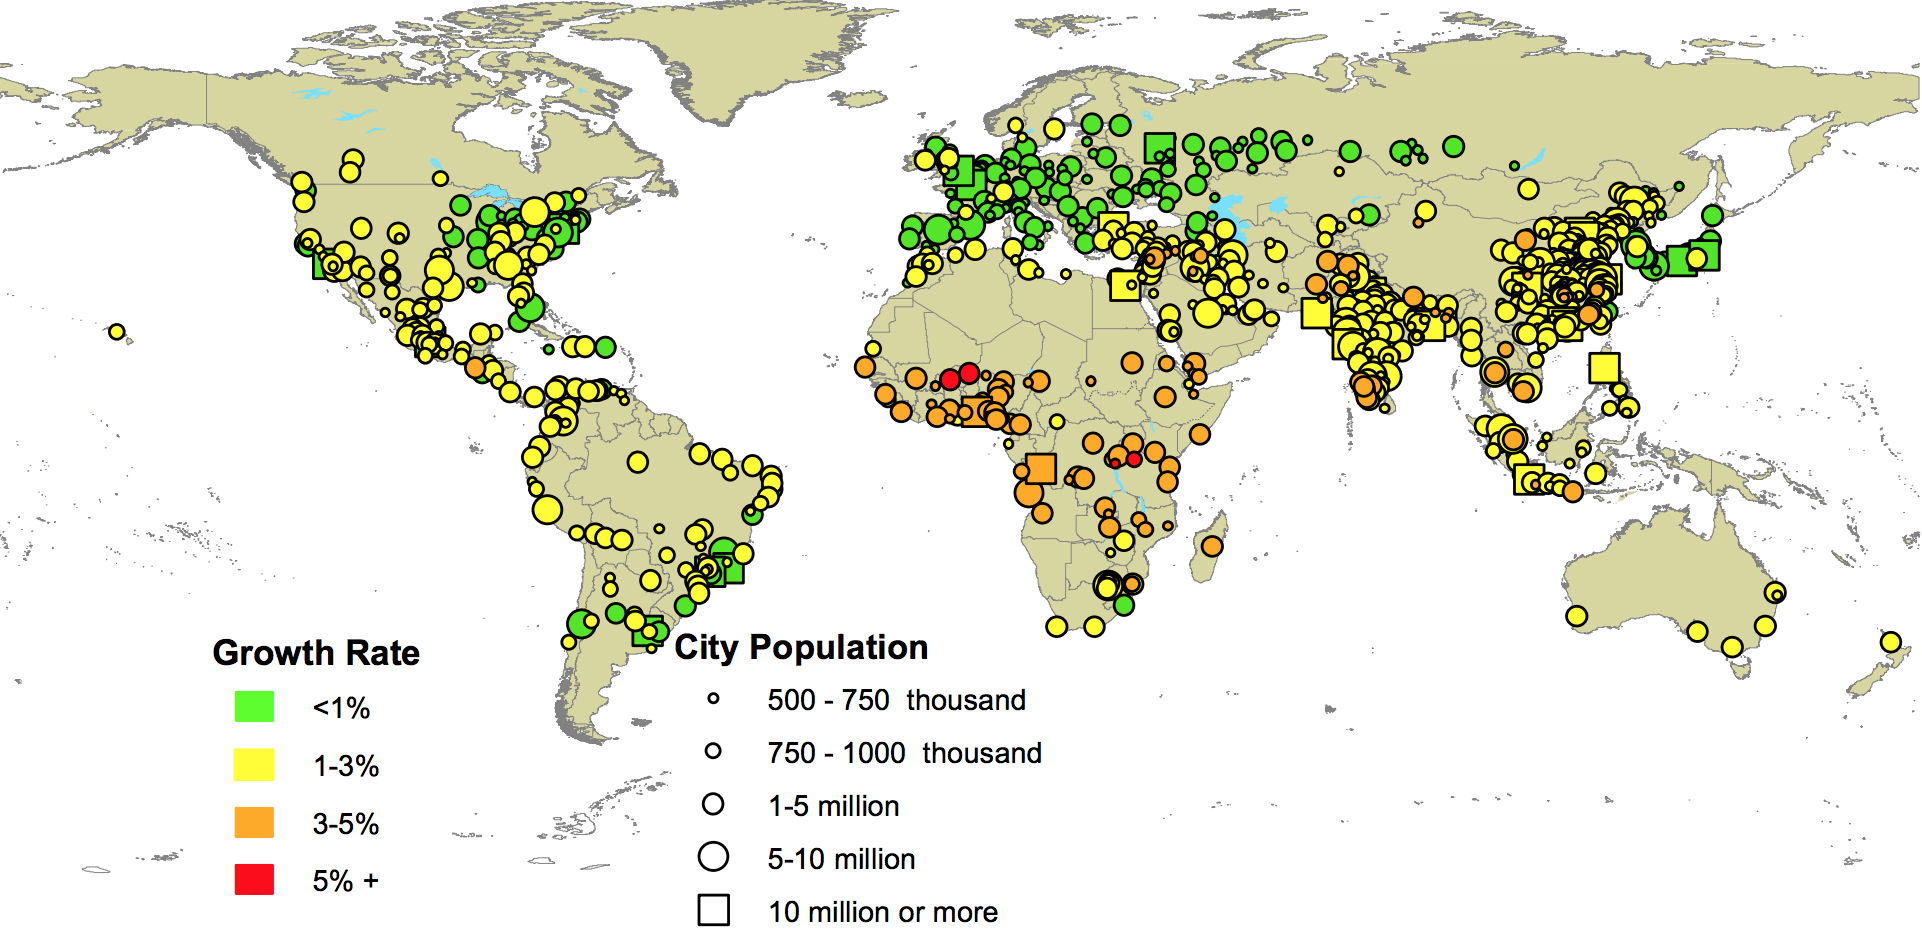 Growth rates of urban agglomerations by size class